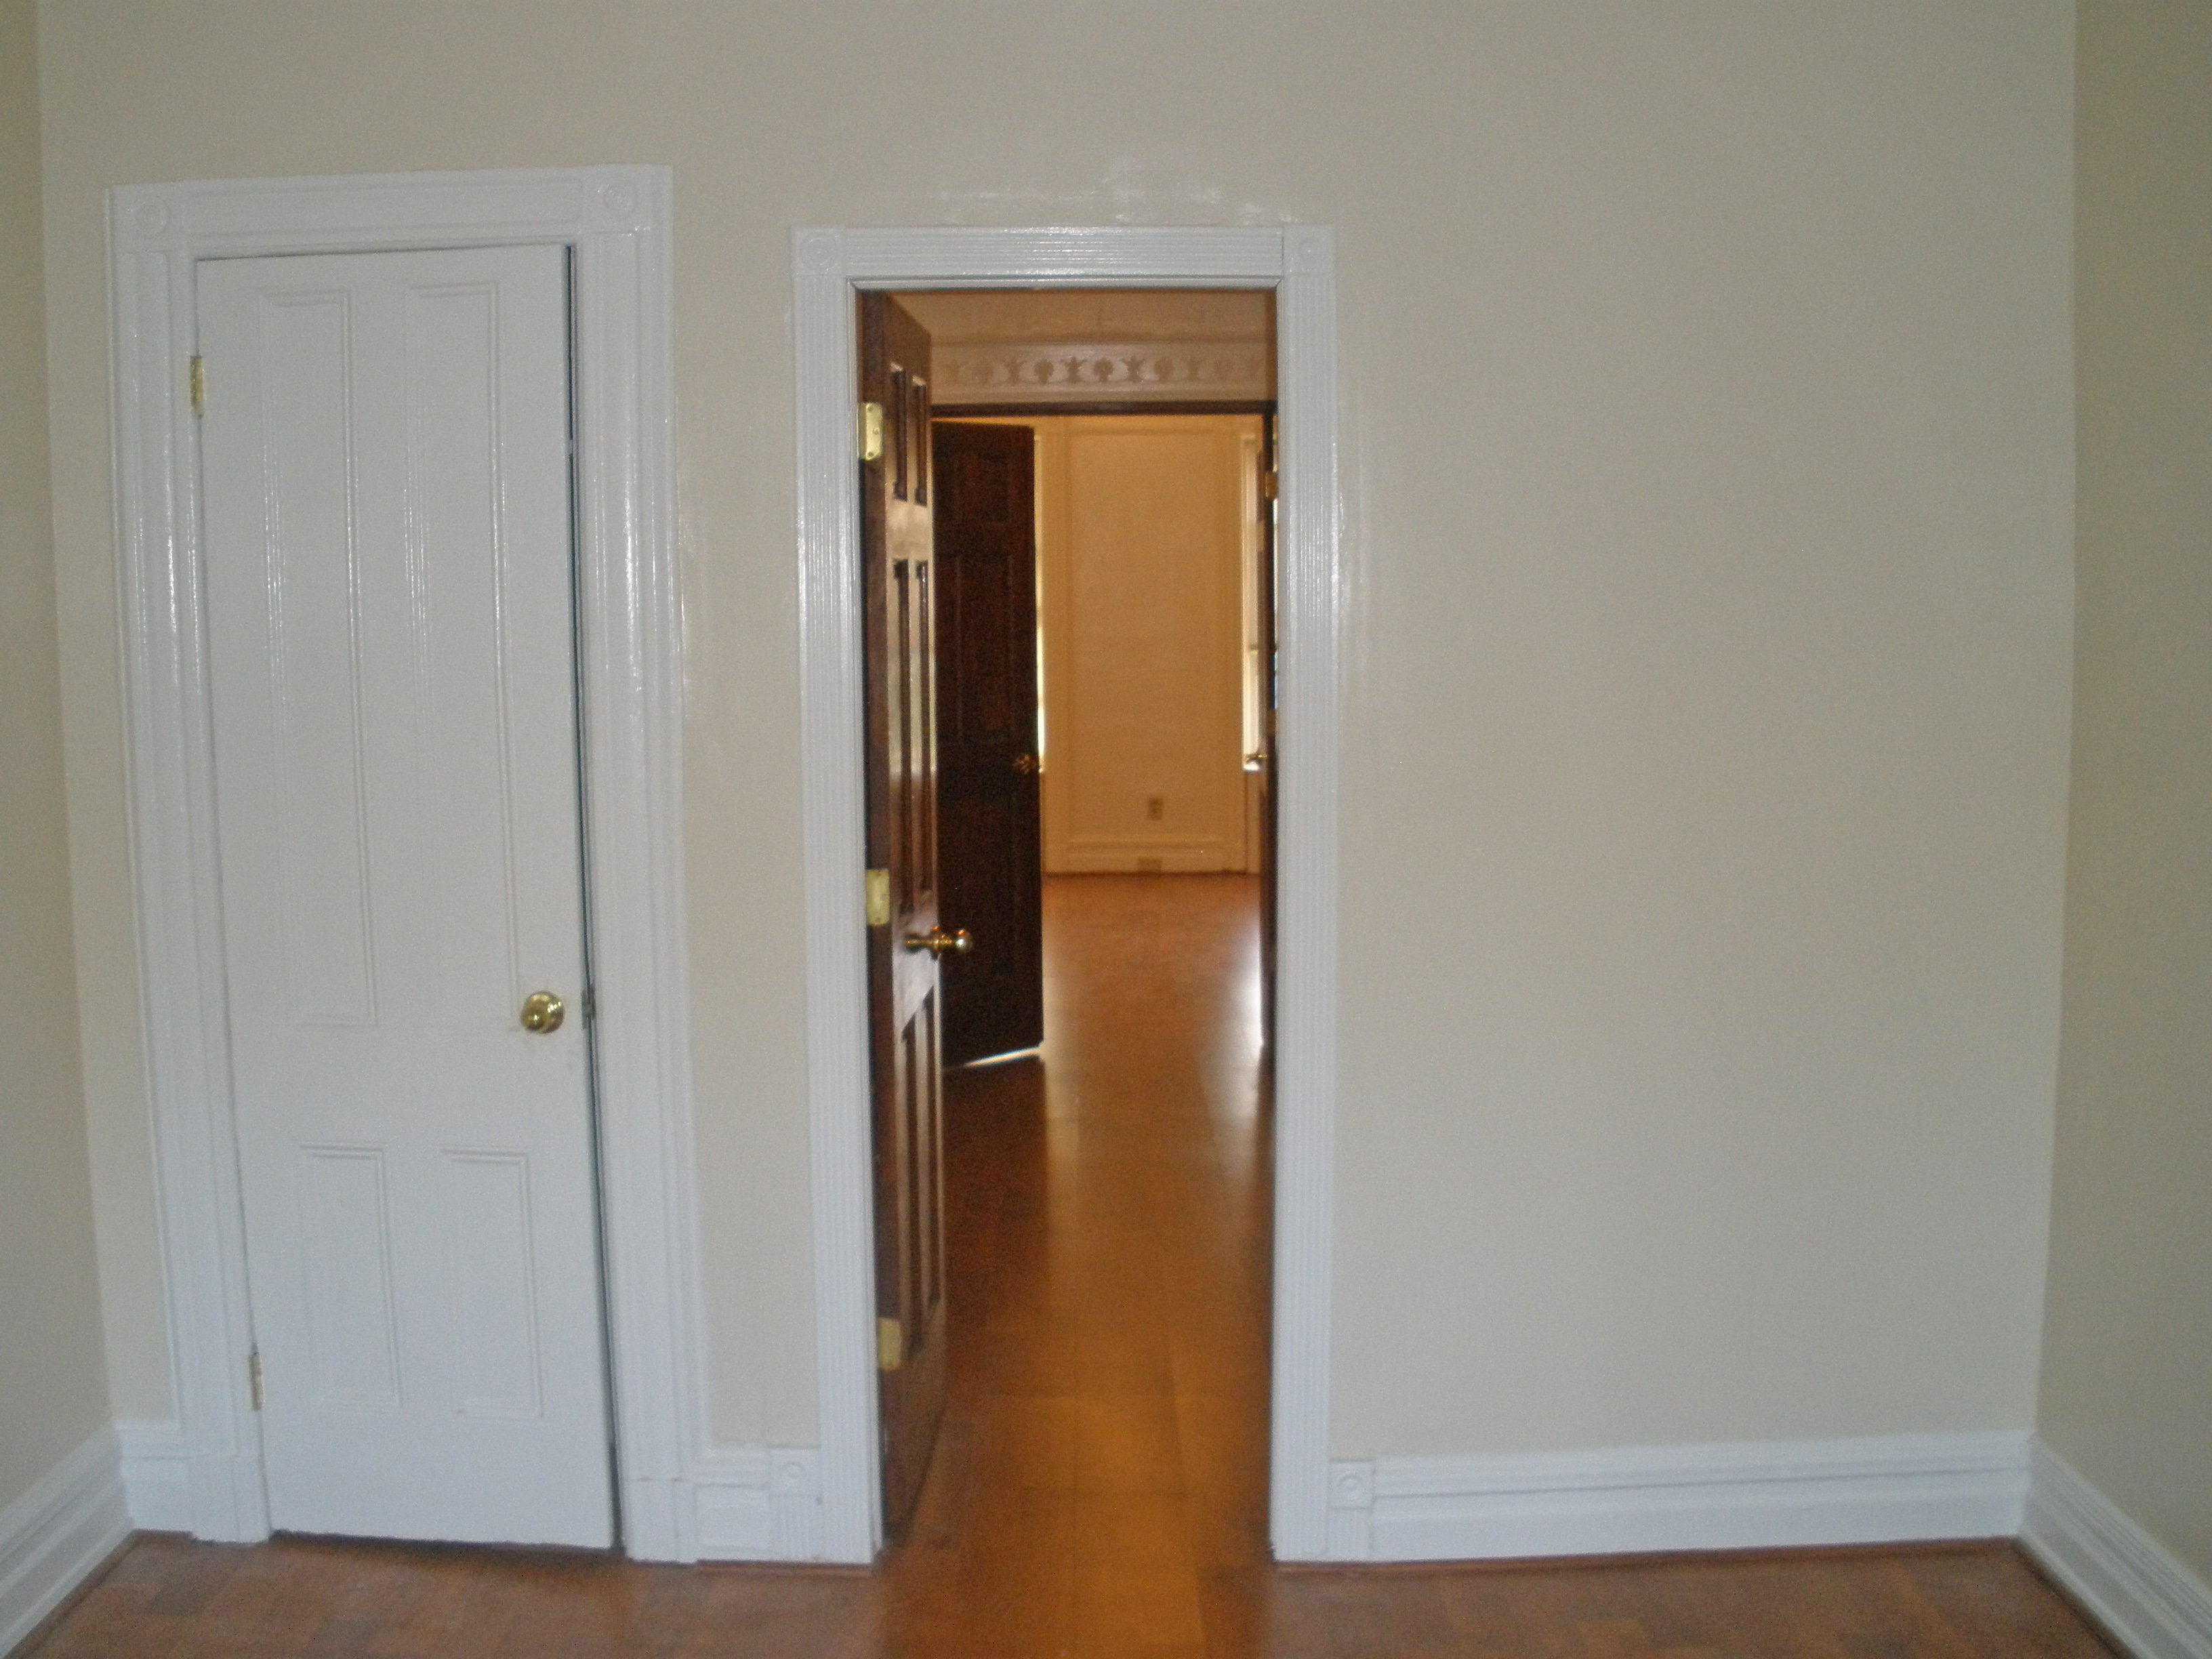 Bed stuy 2 bedroom apartment for rent brooklyn crg3117 for Two bedroom apt in bed stuy area